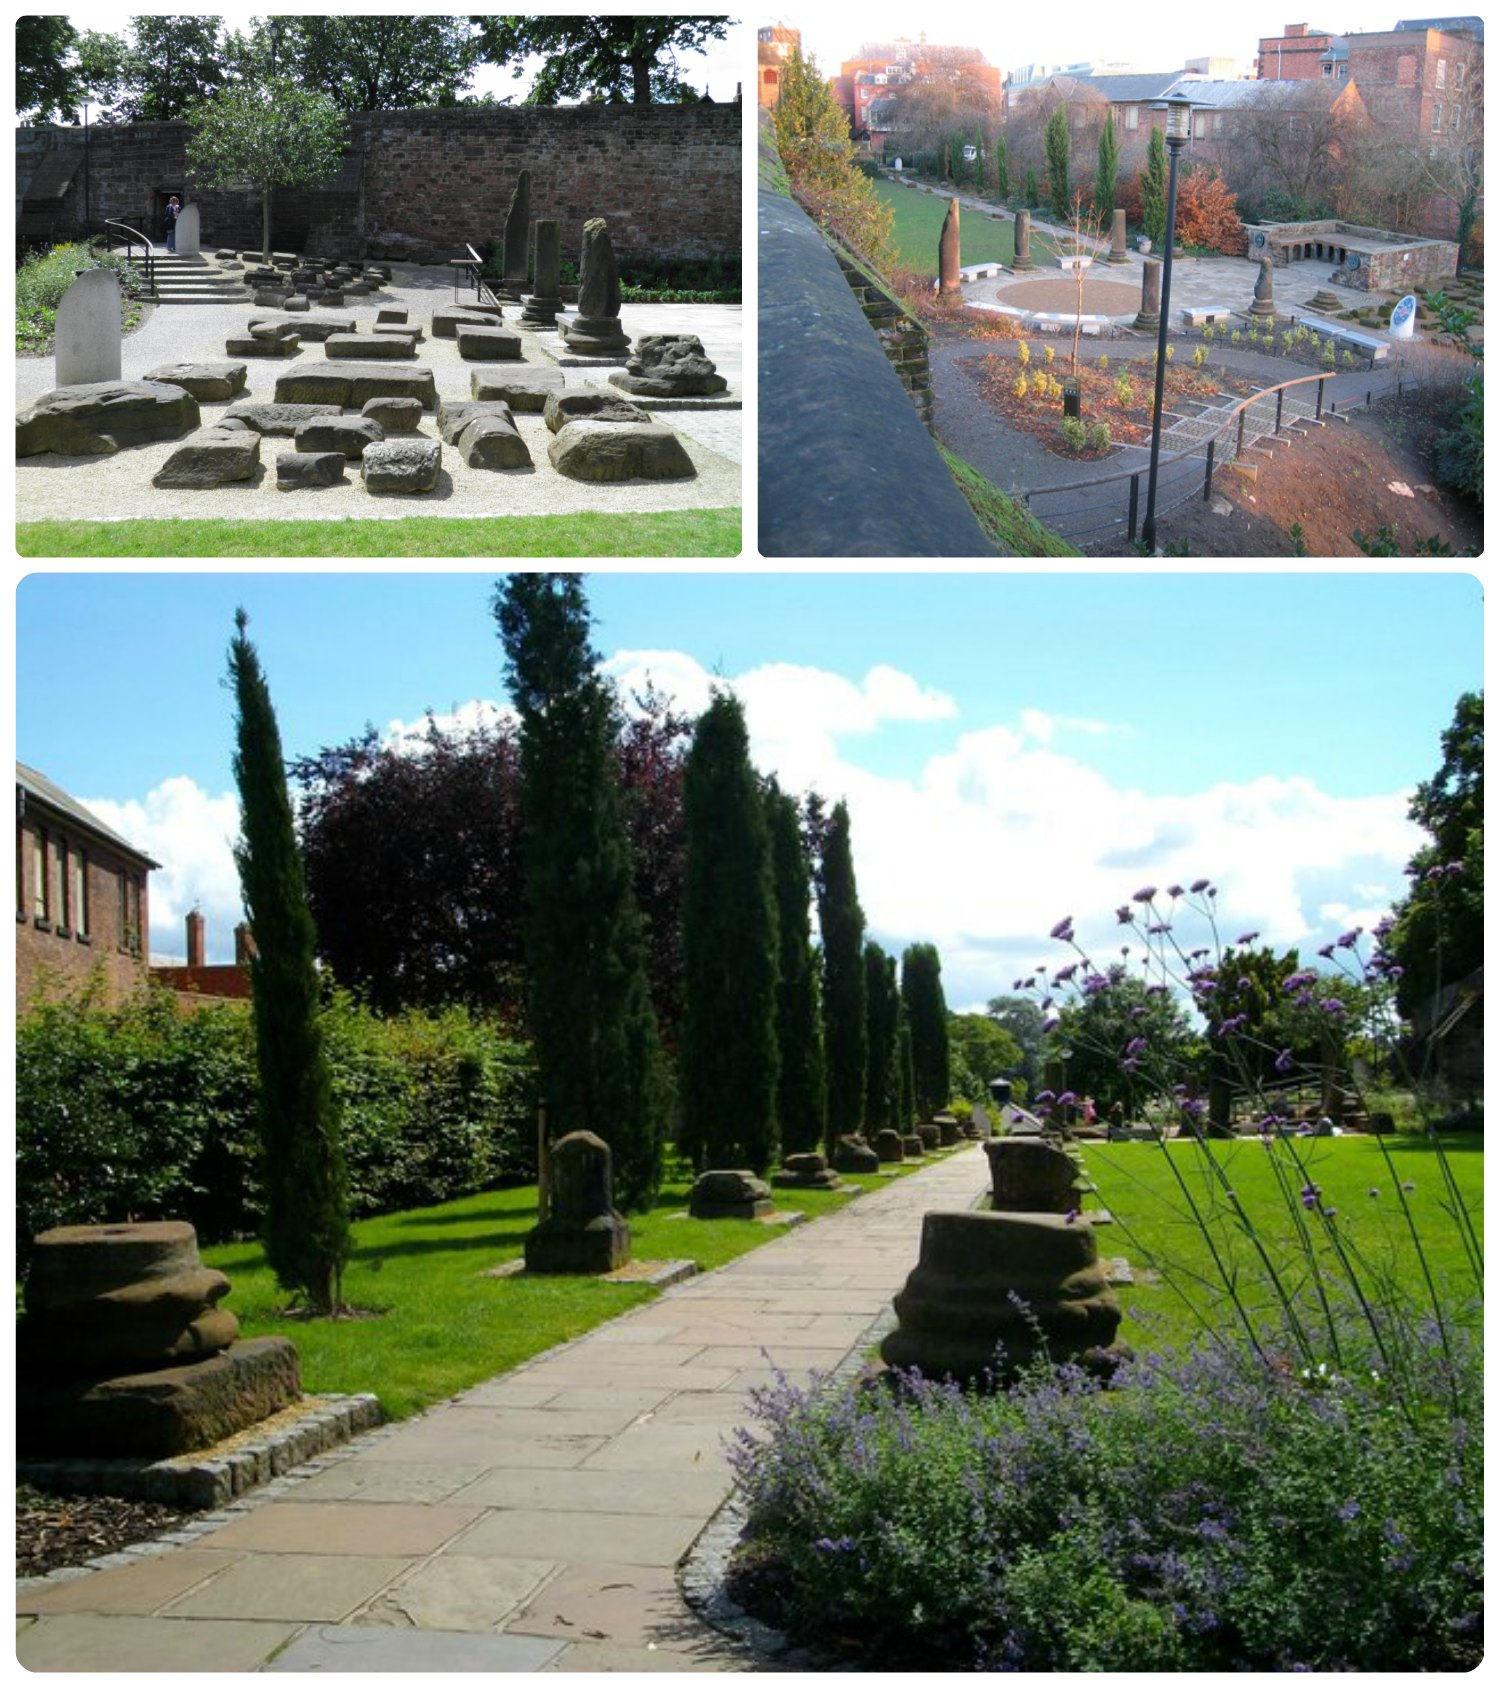 The Roman Gardens in Chester, United Kingdom showcase the ancient Roman ruins found in the city.